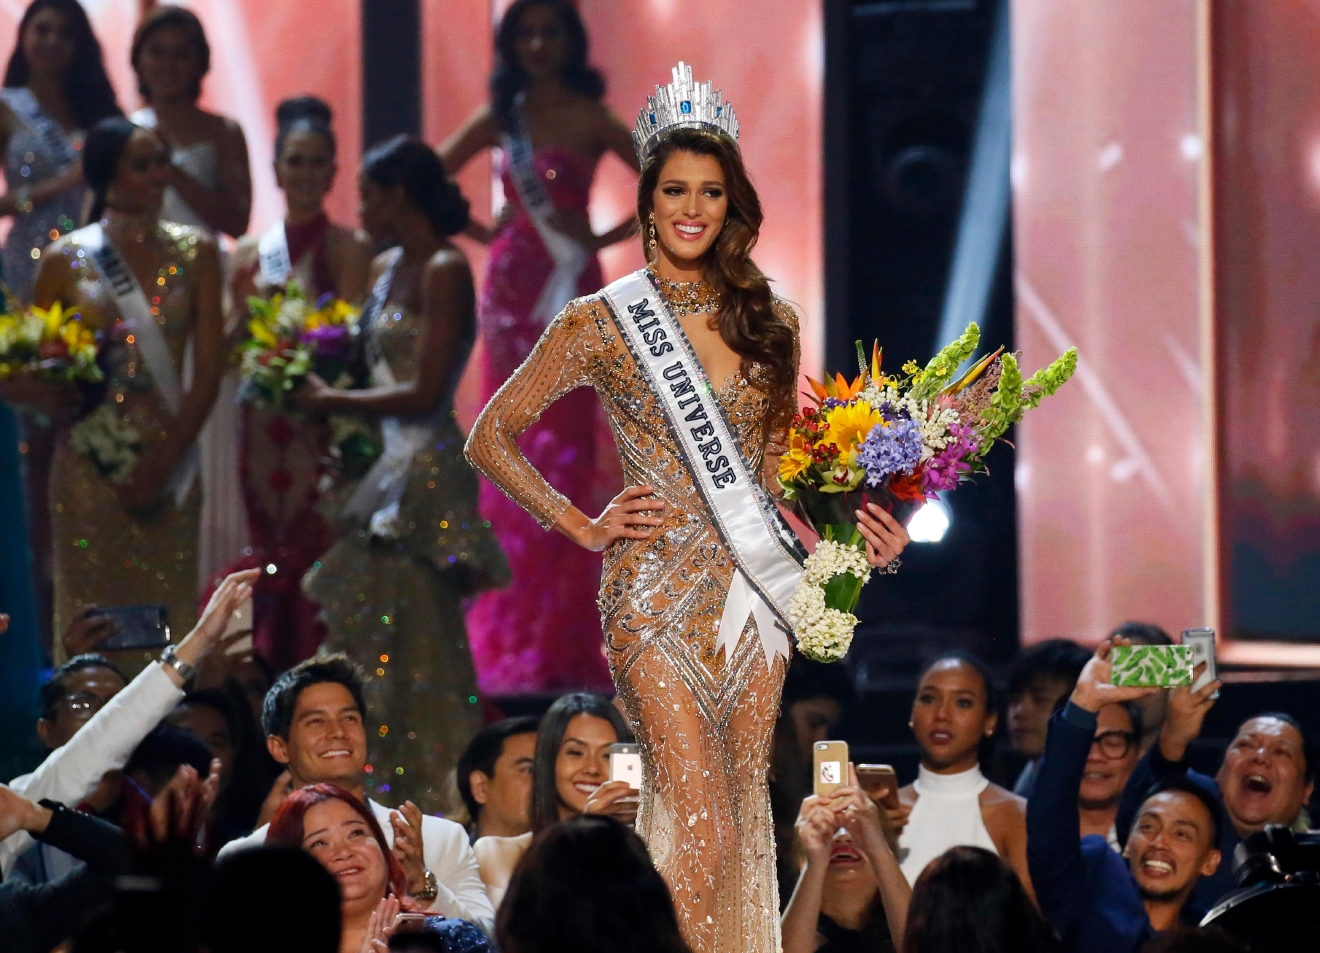 Iris Mittenaere of France reacts shortly after being proclaimed the new Miss Universe 2016 in coronation Monday, Jan. 30, 2017, at the Mall of Asia in suburban Pasay city, south of Manila, Philippines. (AP Photo/Bullit Marquez)